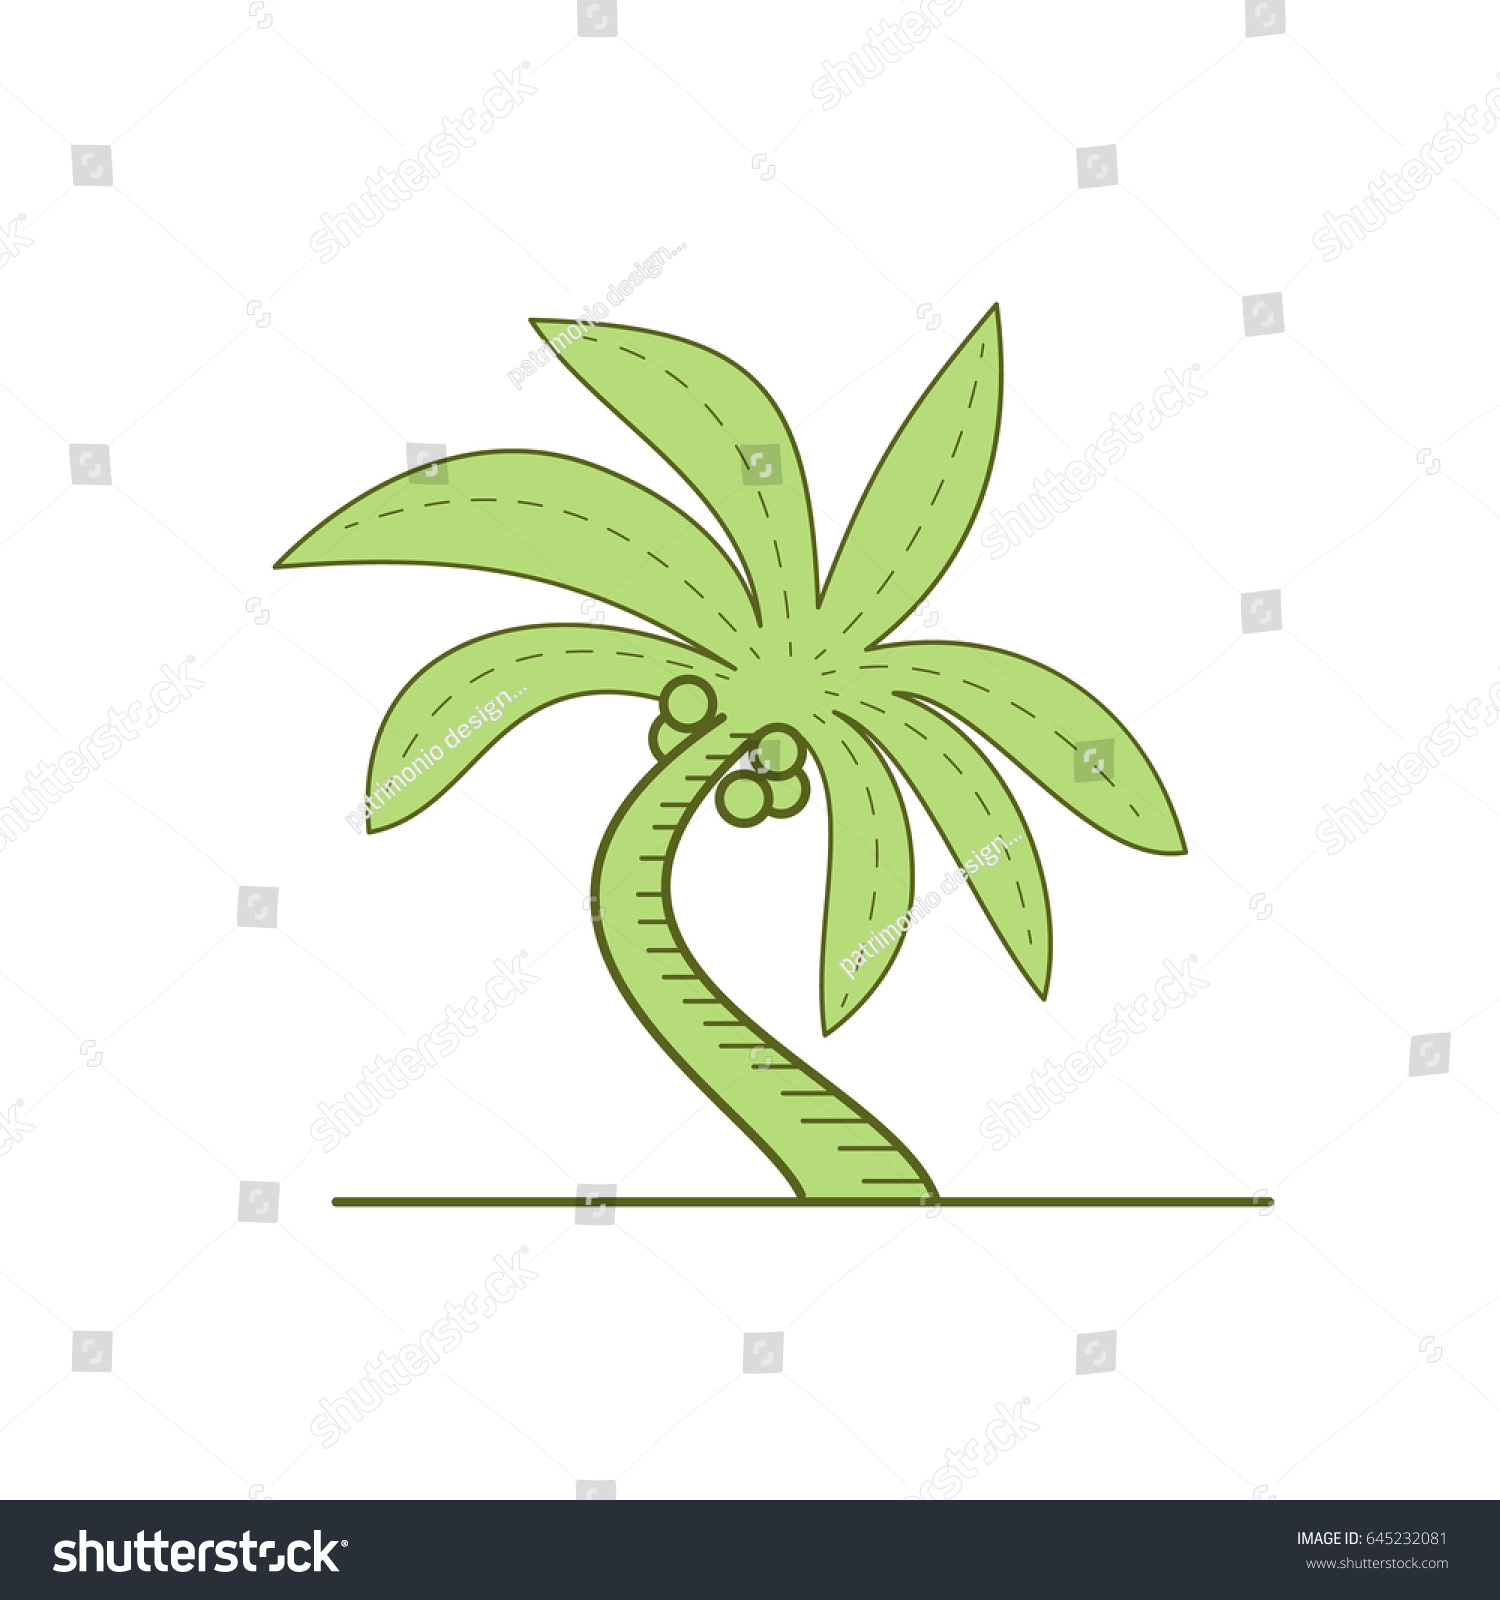 Mono line style illustration of a curved palm tree or arecaceae a flowering plants